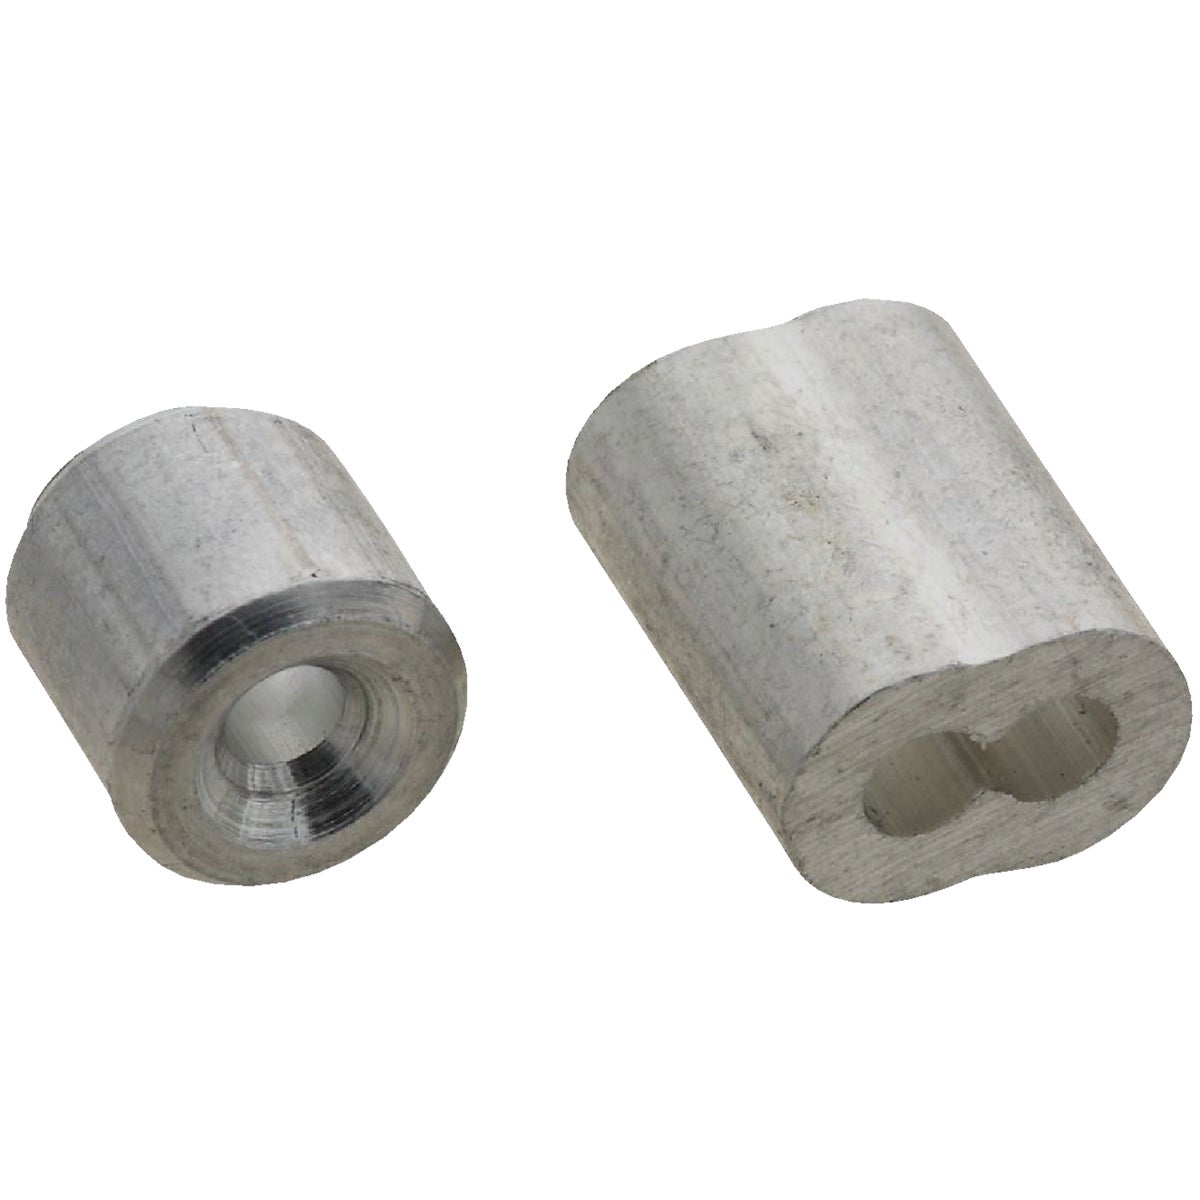 "3/32"" FERRULES & STOPS - N283887 by National Mfg Co"